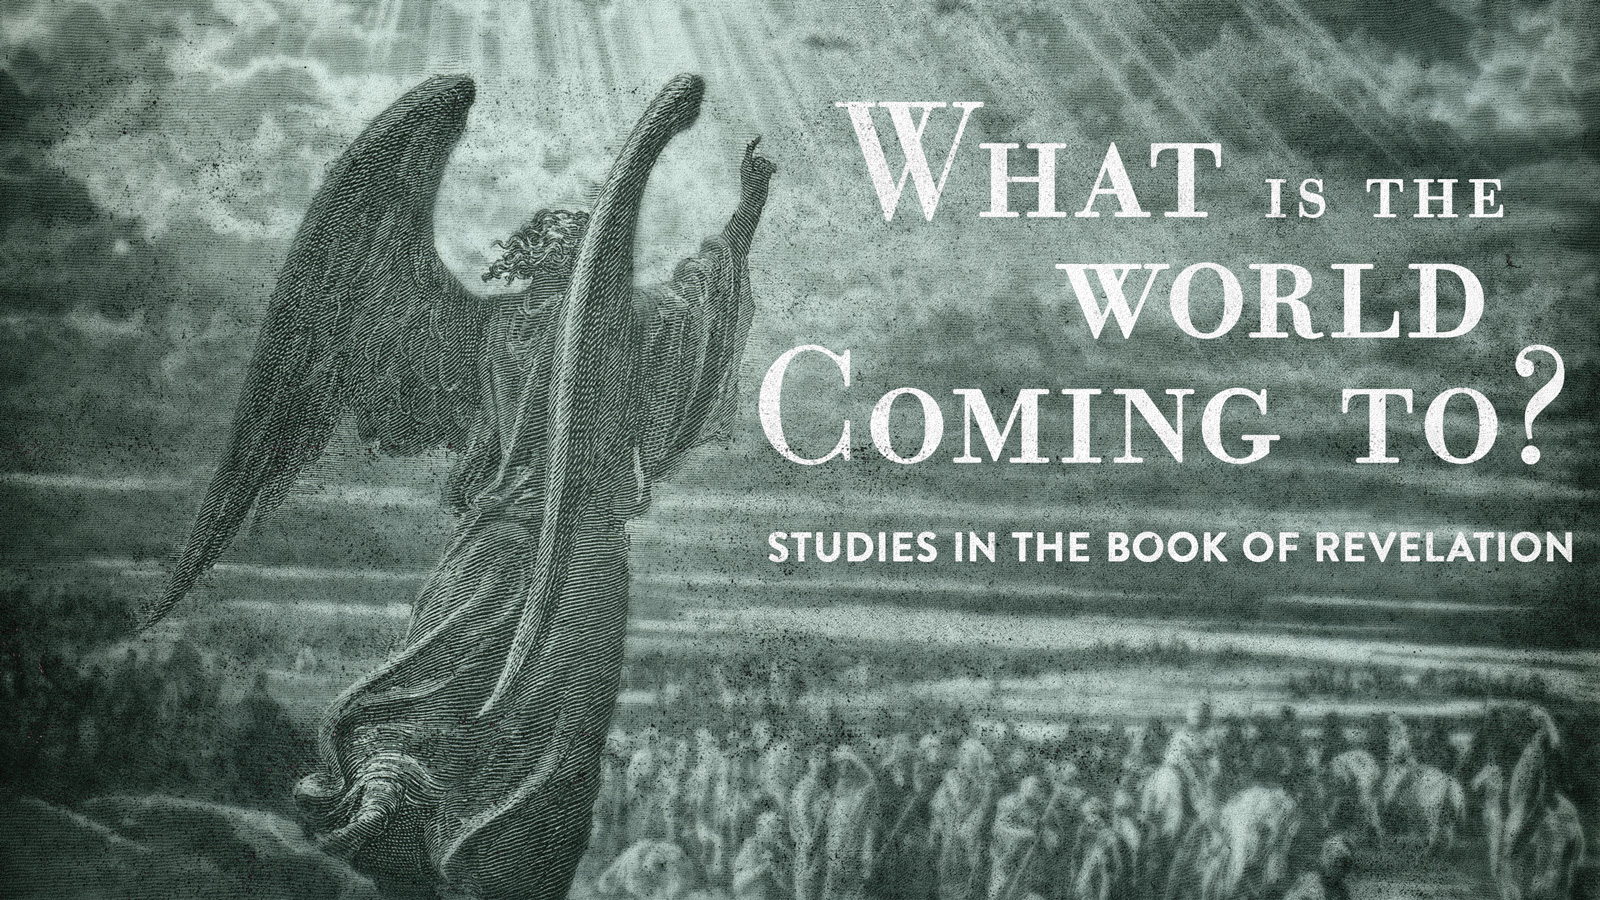 What is the World Coming To? Studies in the Book of Revelation